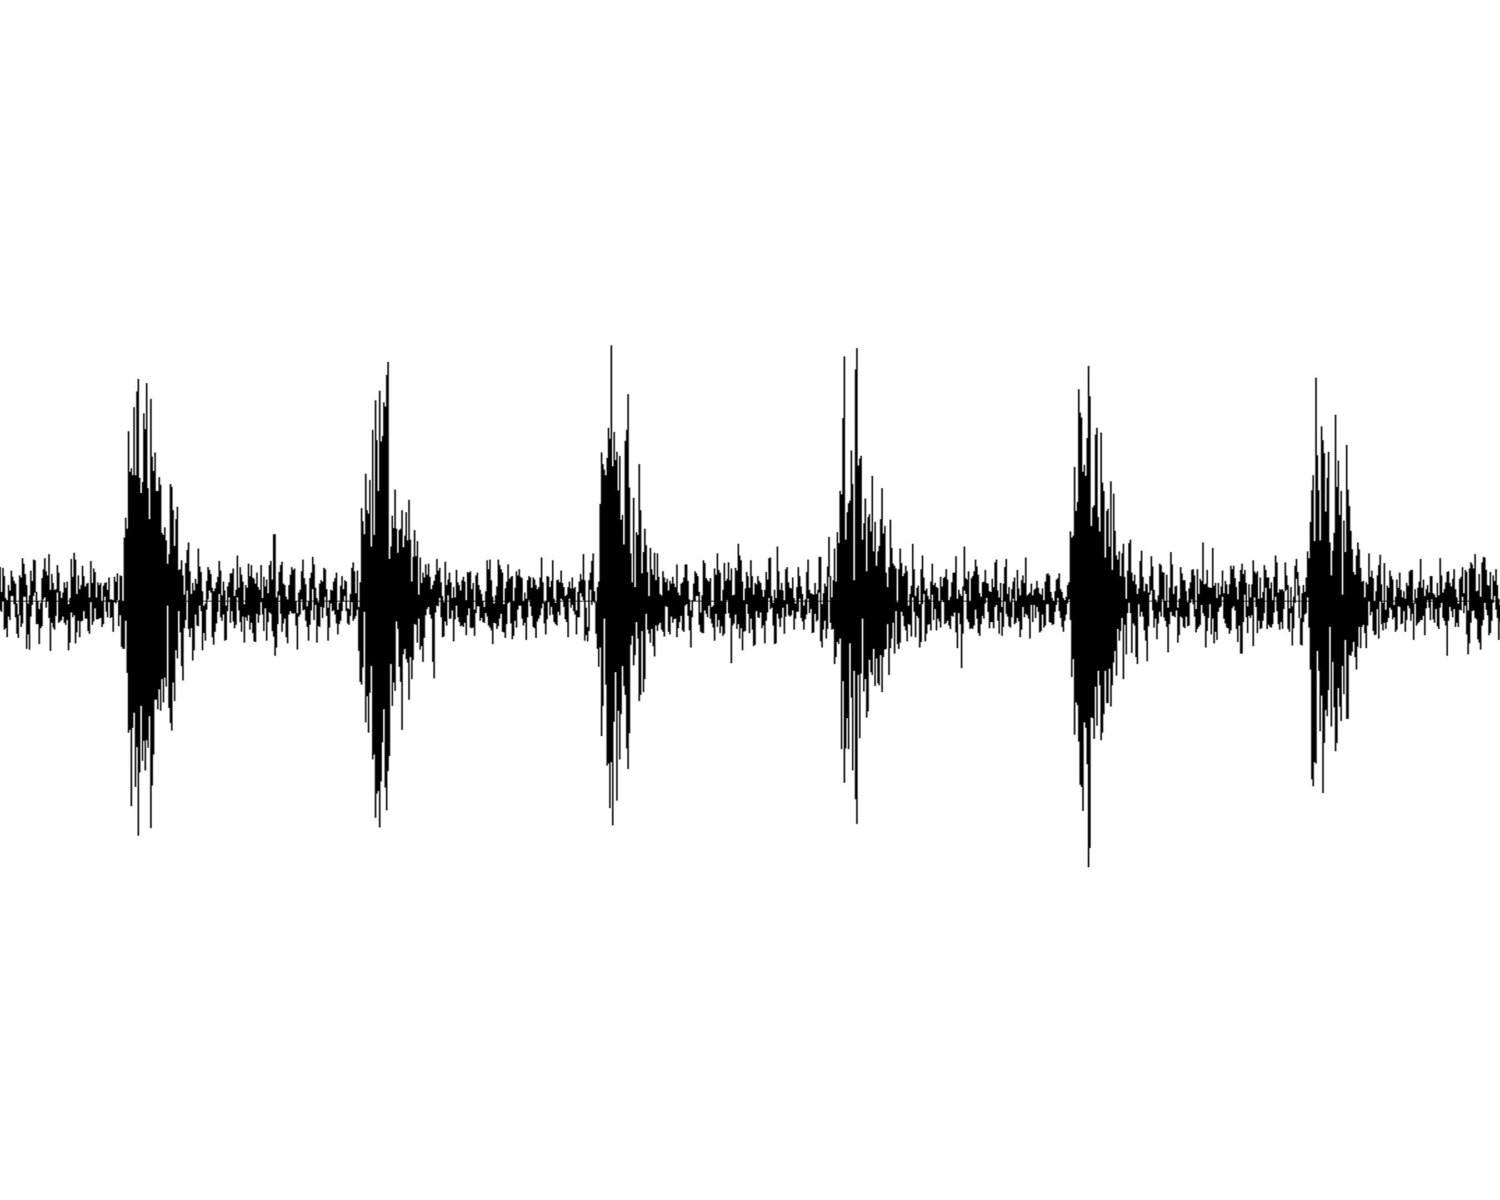 Tattoo Sound Wave Custom Art - Black & White Digital File - Artsy Voiceprint - 2